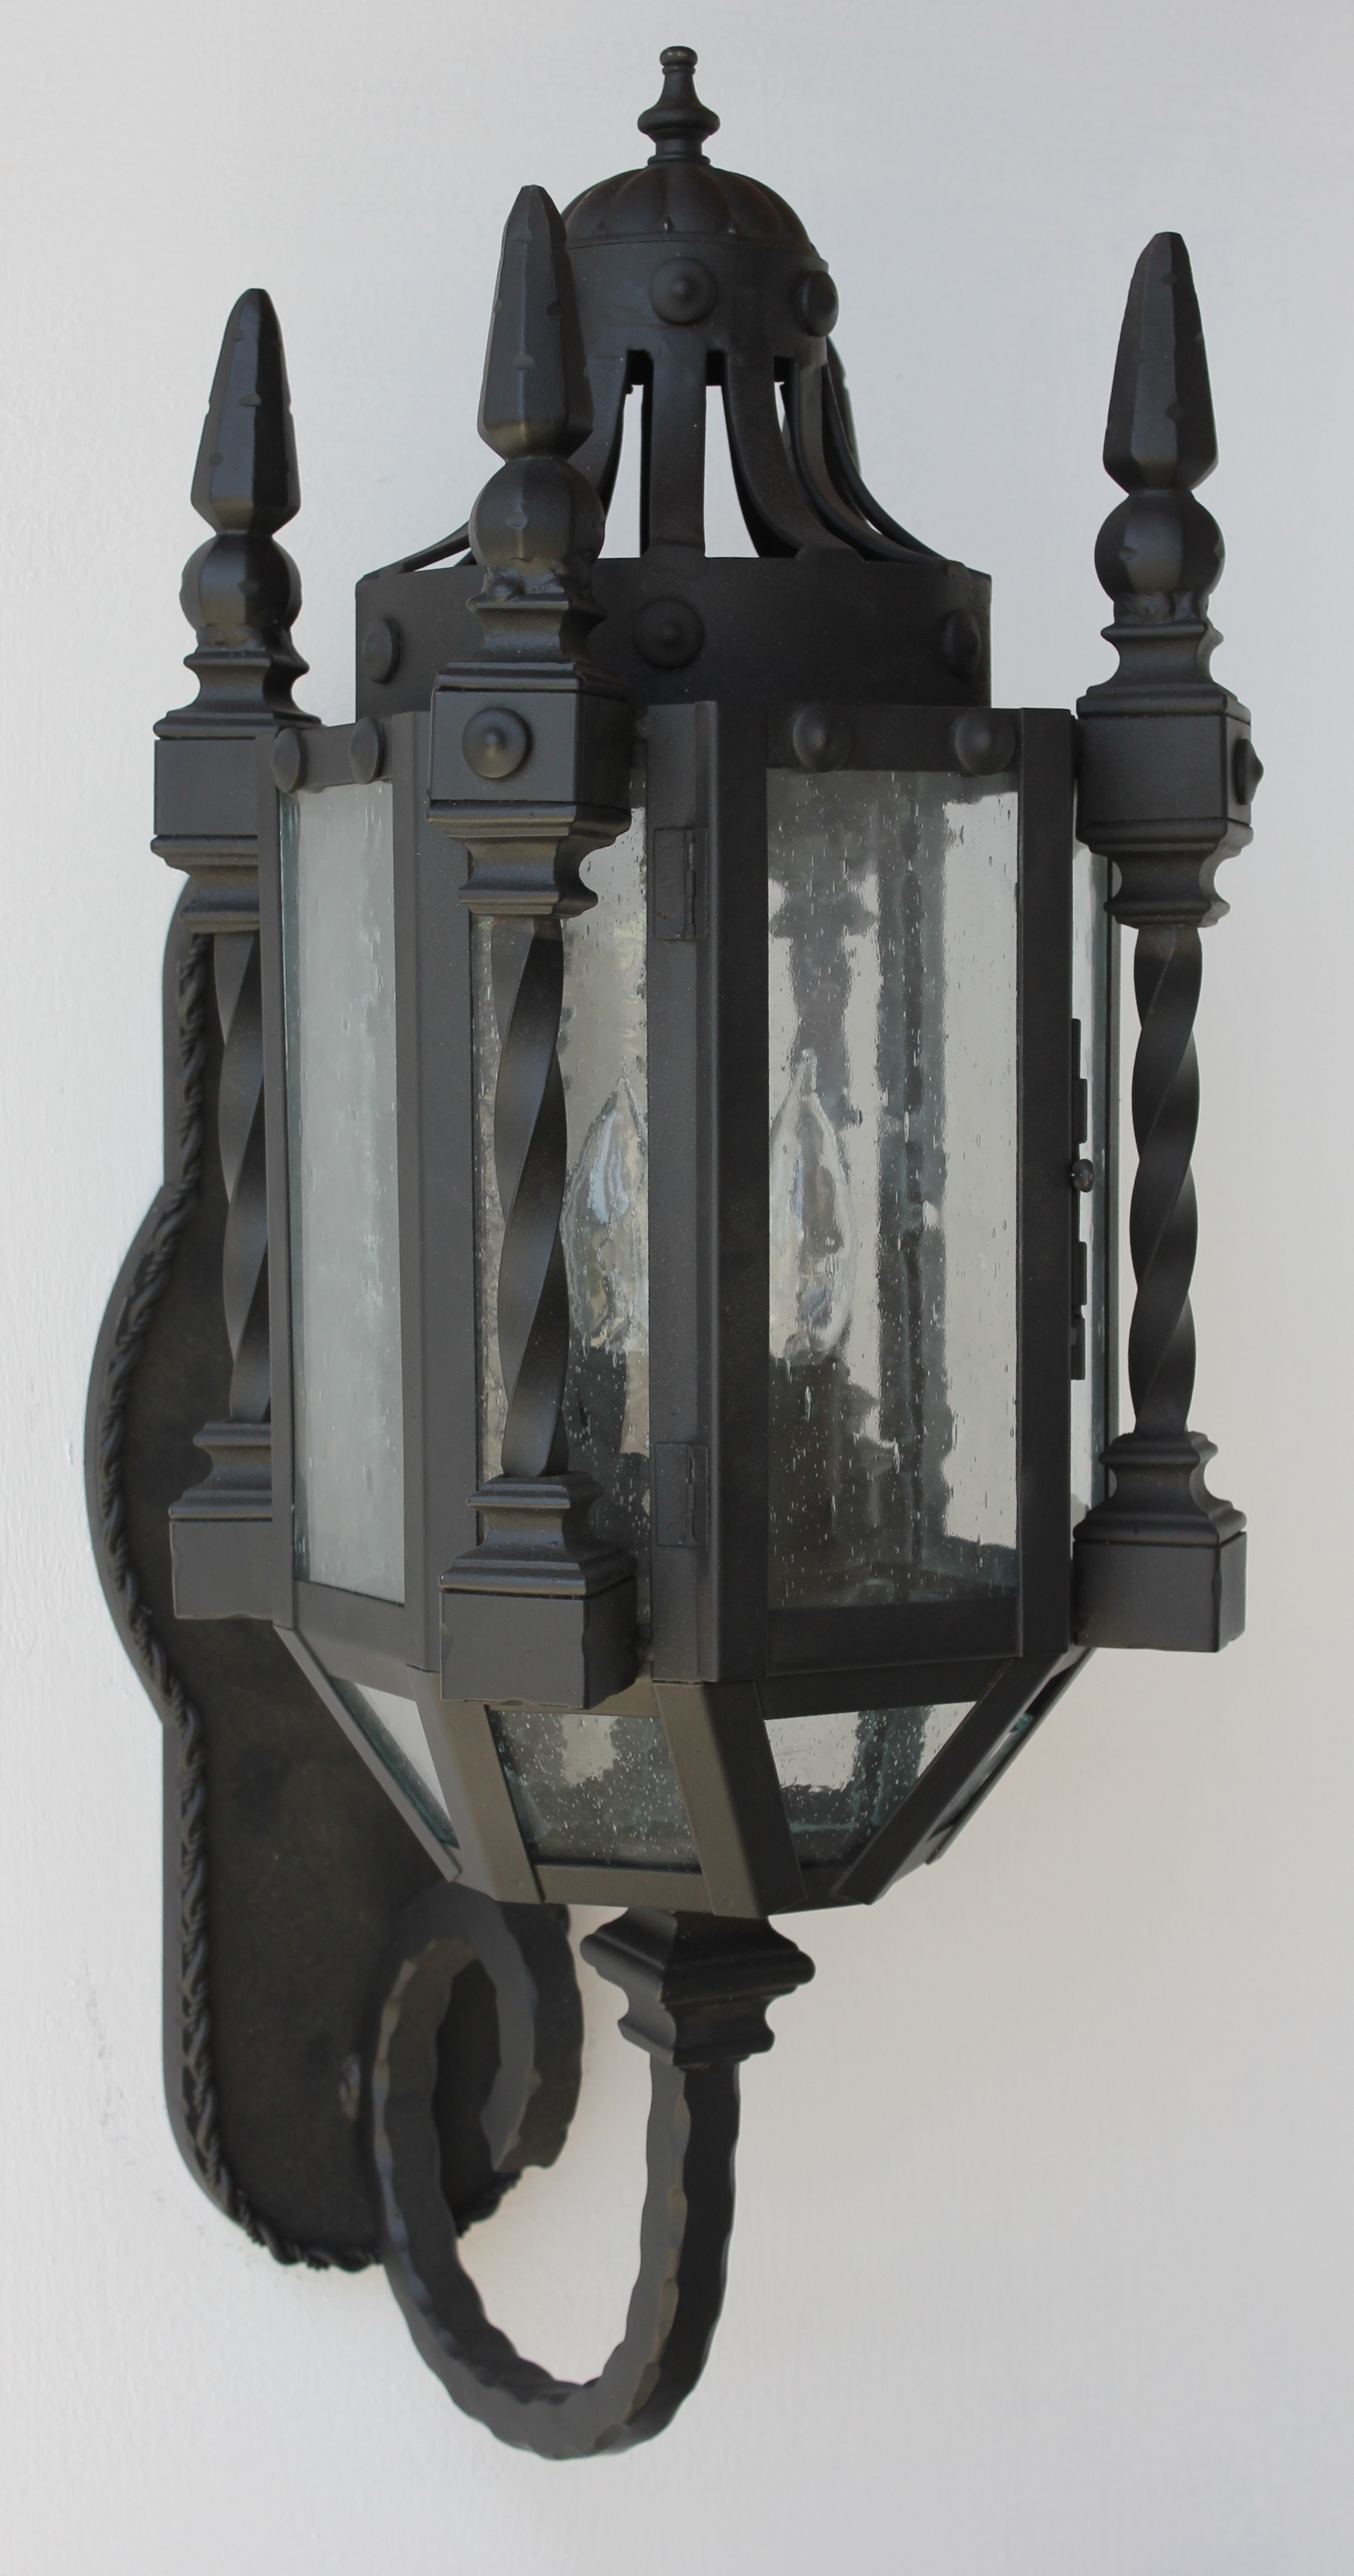 Gothic Outdoor Wall Lighting Throughout Most Recent Lights Of Tuscany 7046 3 Wrought Iron Gothic/medieval Wall Lanter (Gallery 11 of 20)